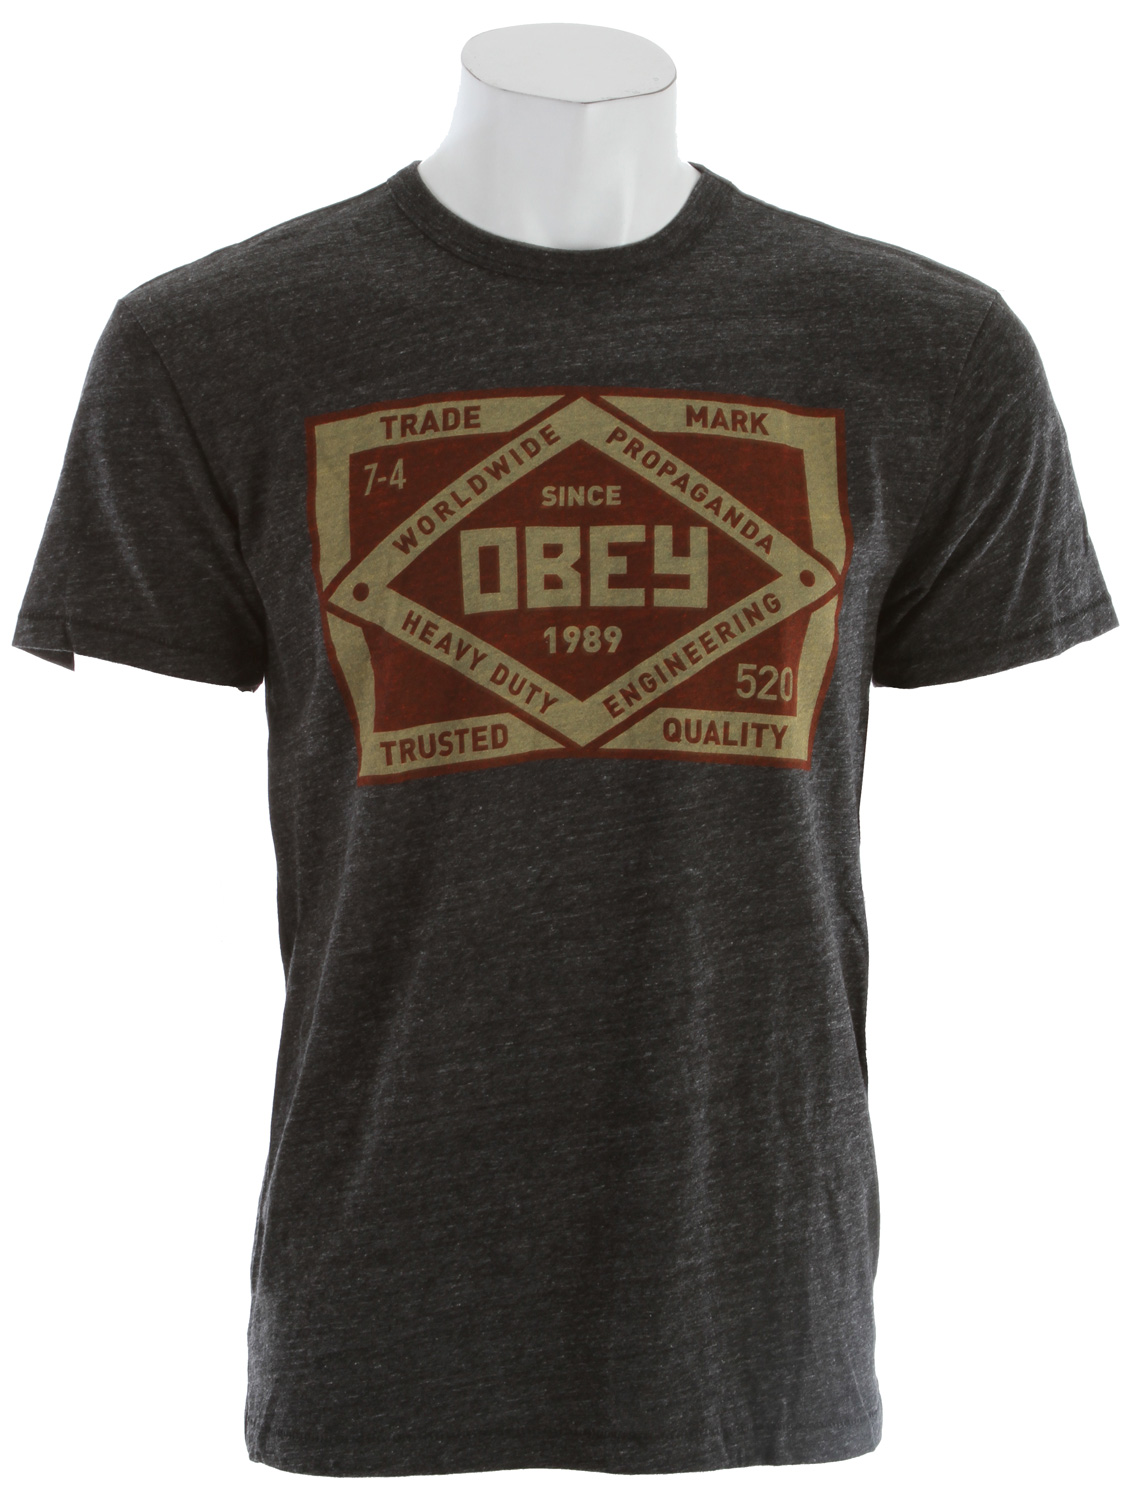 Key Features of The Obey Trademark T-Shirt: Slim Fit Crew Neck Short Sleeve Lightweight slim fit tri-blend tee with heather pattern rib neck binding 50% polyester/25% cotton/25% rayon - $29.95